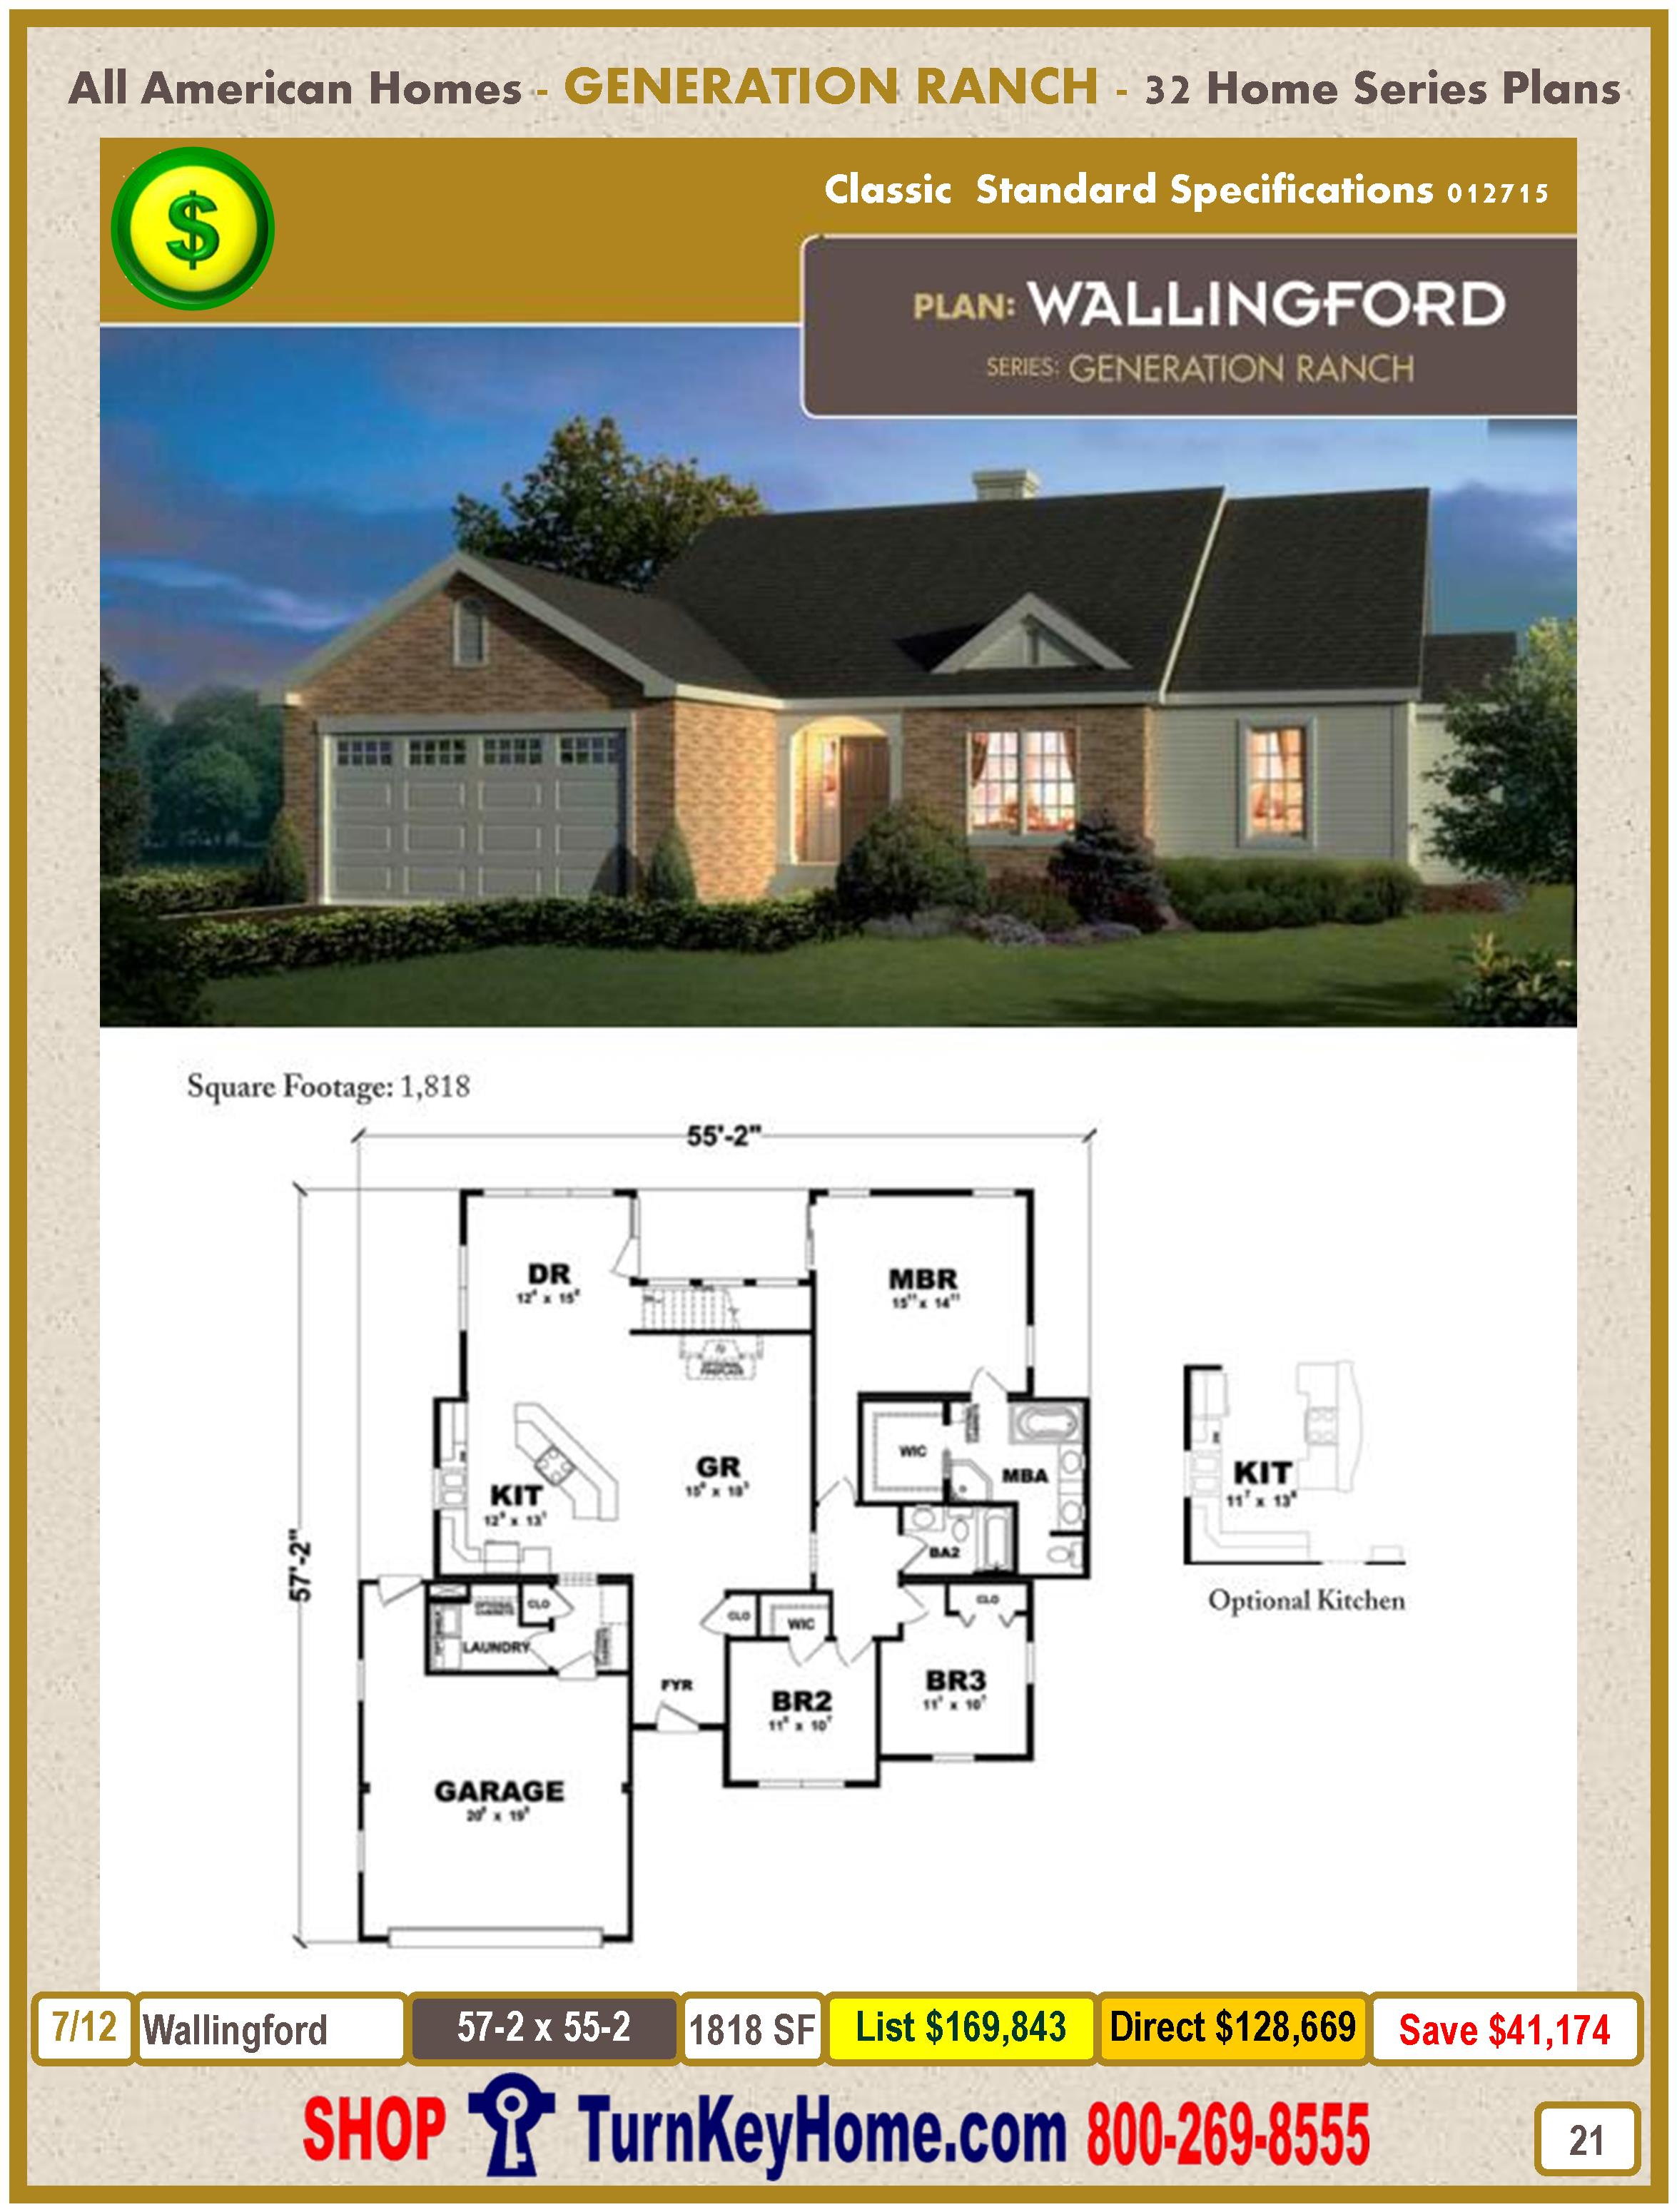 Modular.All.American.Homes.Generation.Ranch.Home.Series.Catalog.Page.21.Wallingford.Direct.Price.021415